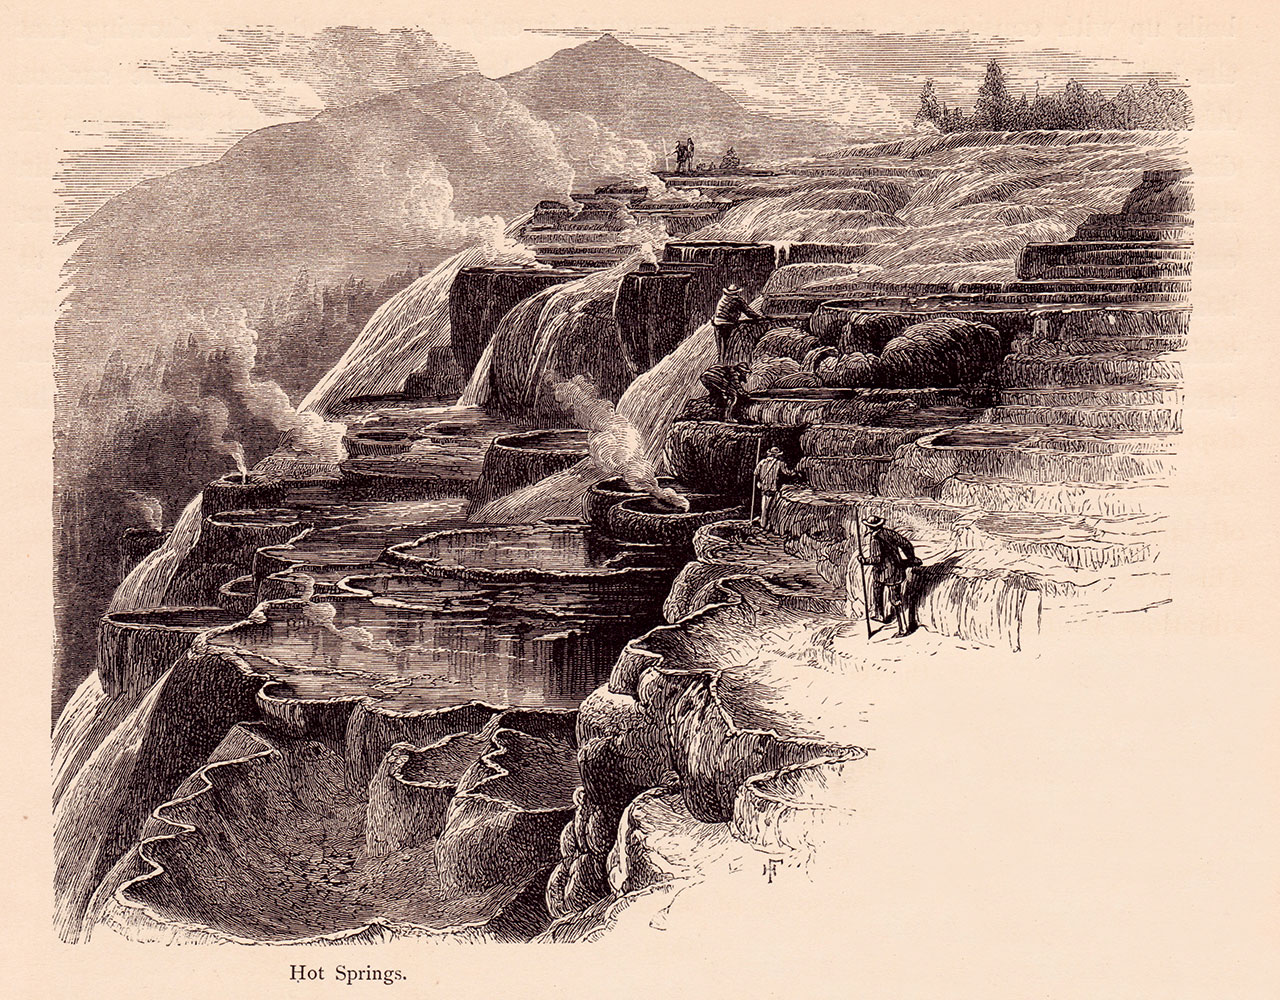 Moran took liberties with his illustration of figures exploring Jupiter Terrace at Mammoth Hot Springs. He often served as a subject in many of Jackson's 1871 photographs at Mammoth.